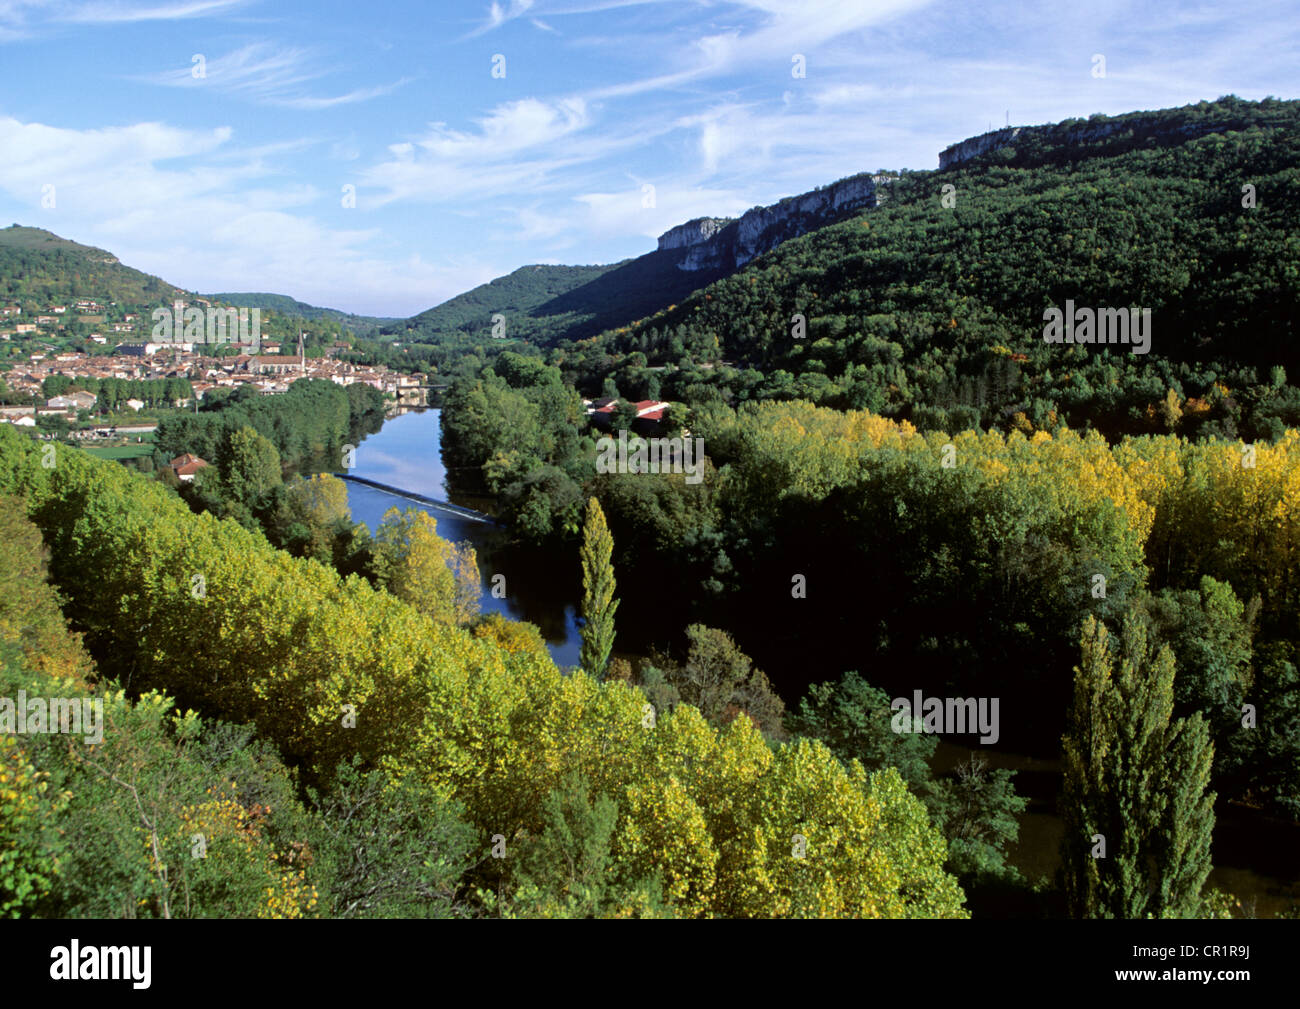 France, Tarn et Garonne, Saint Antonin Noble Val, the Aveyron canyon with Saint Antonin village in the background - Stock Image